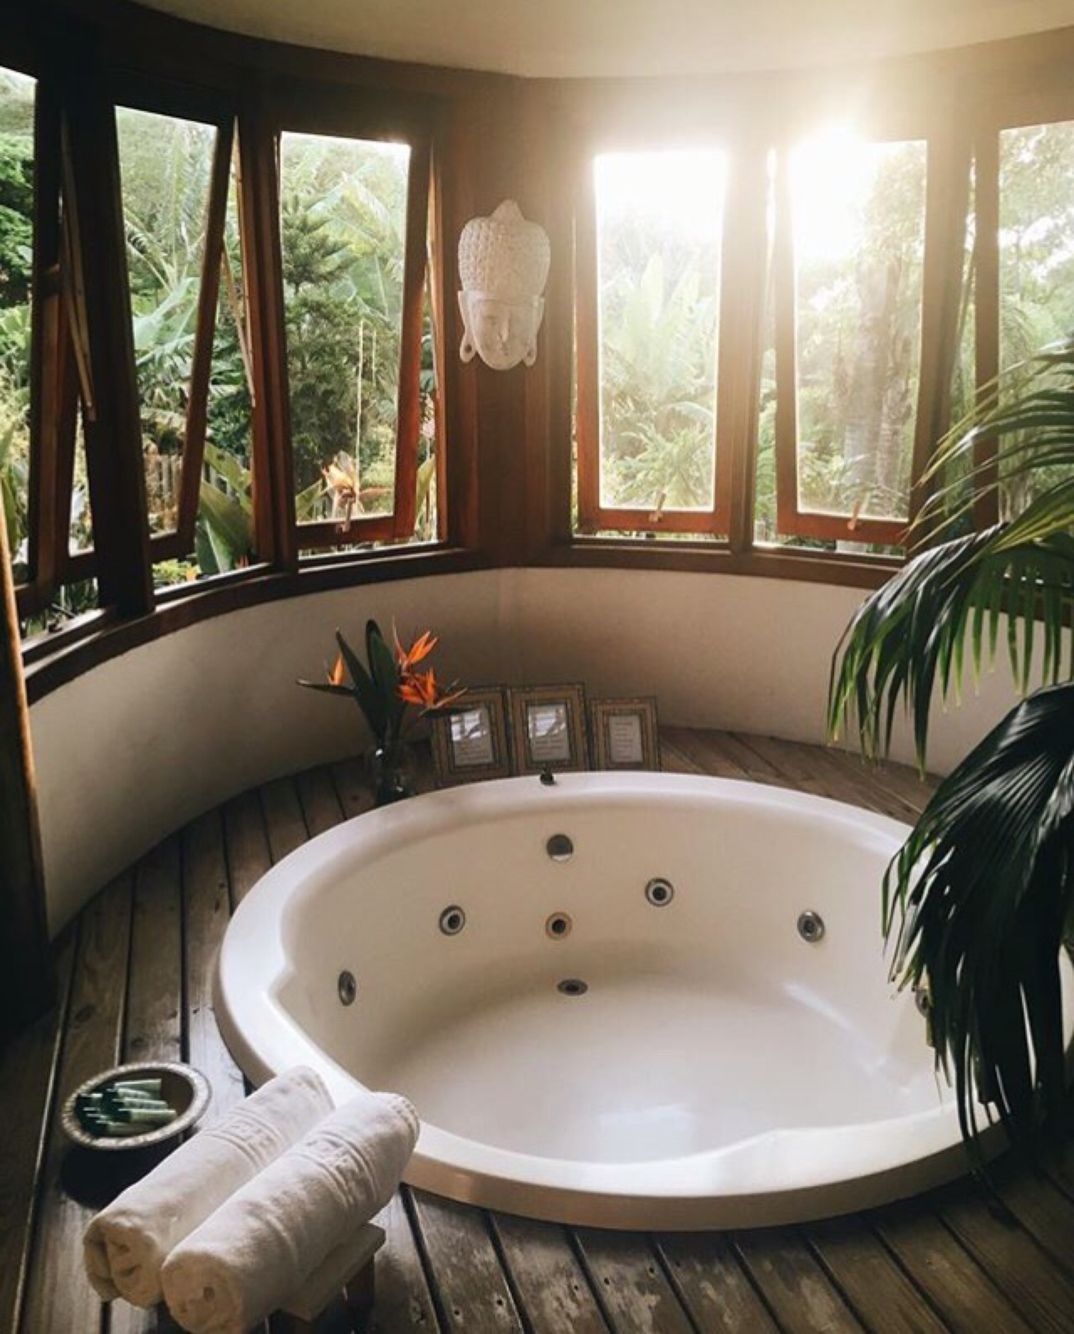 Badezimmer jacuzzi dekoration ideen pin by ban on so fresh and so clean  pinterest  nuggwifee